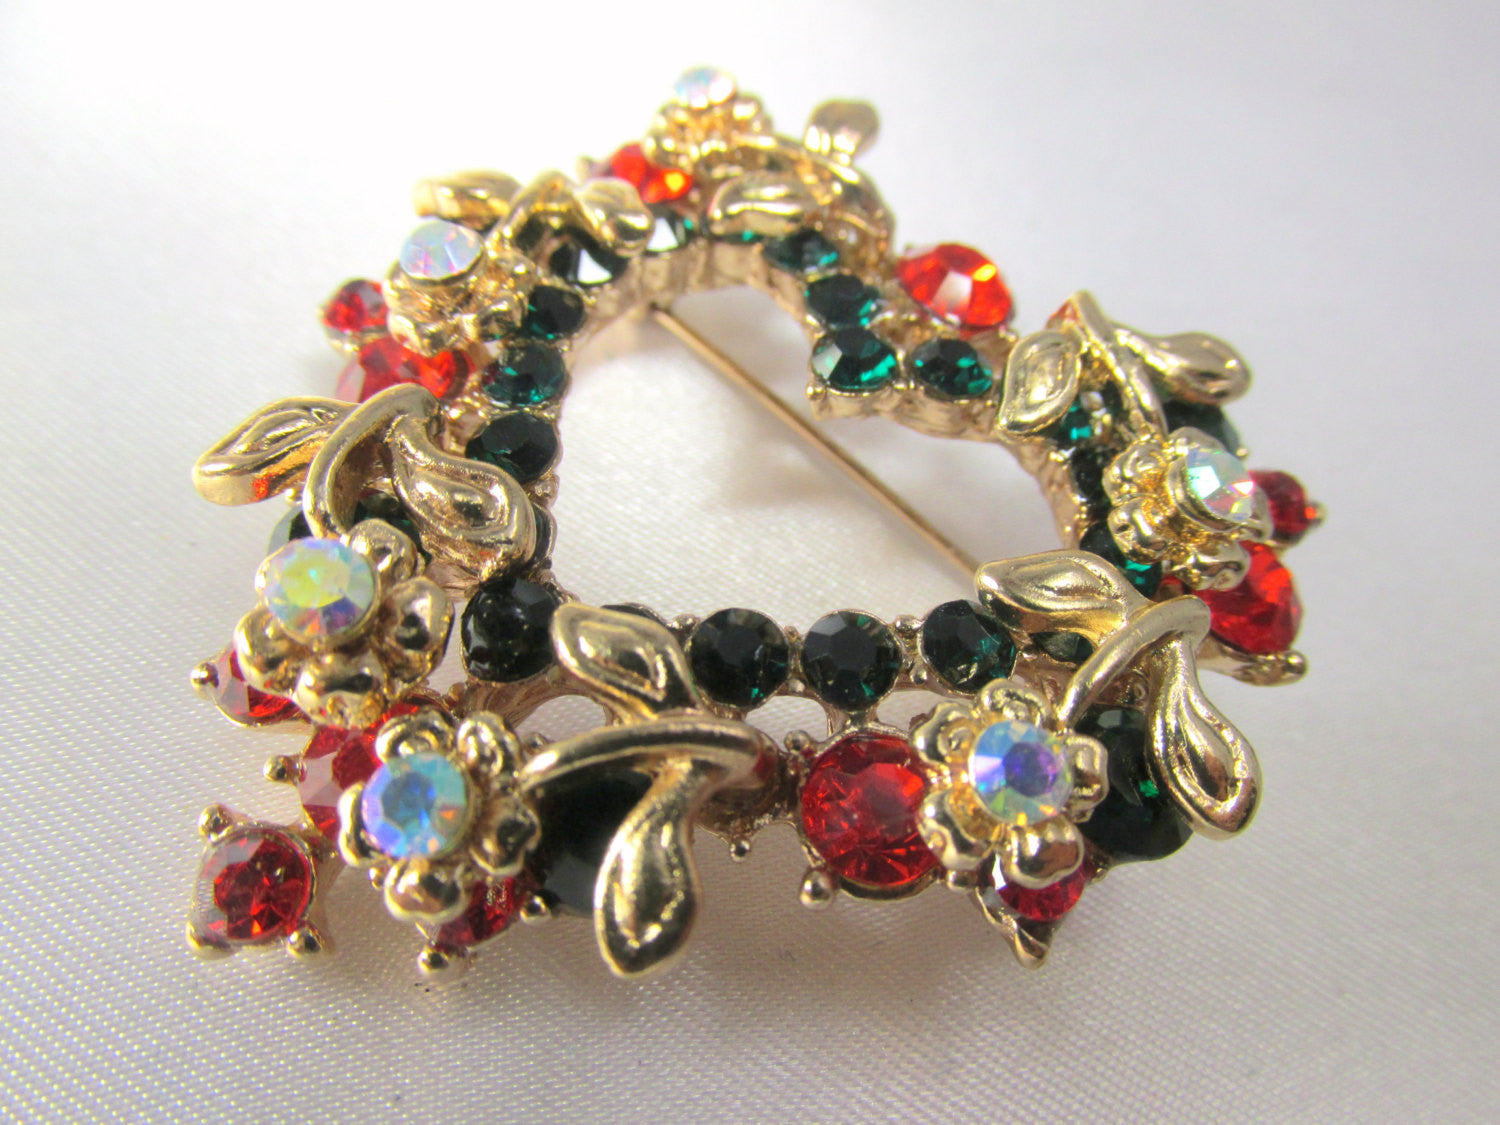 Christmas Heart Wreath Brooch in Green, Red, Crystal AB and Gold - Odyssey Creations